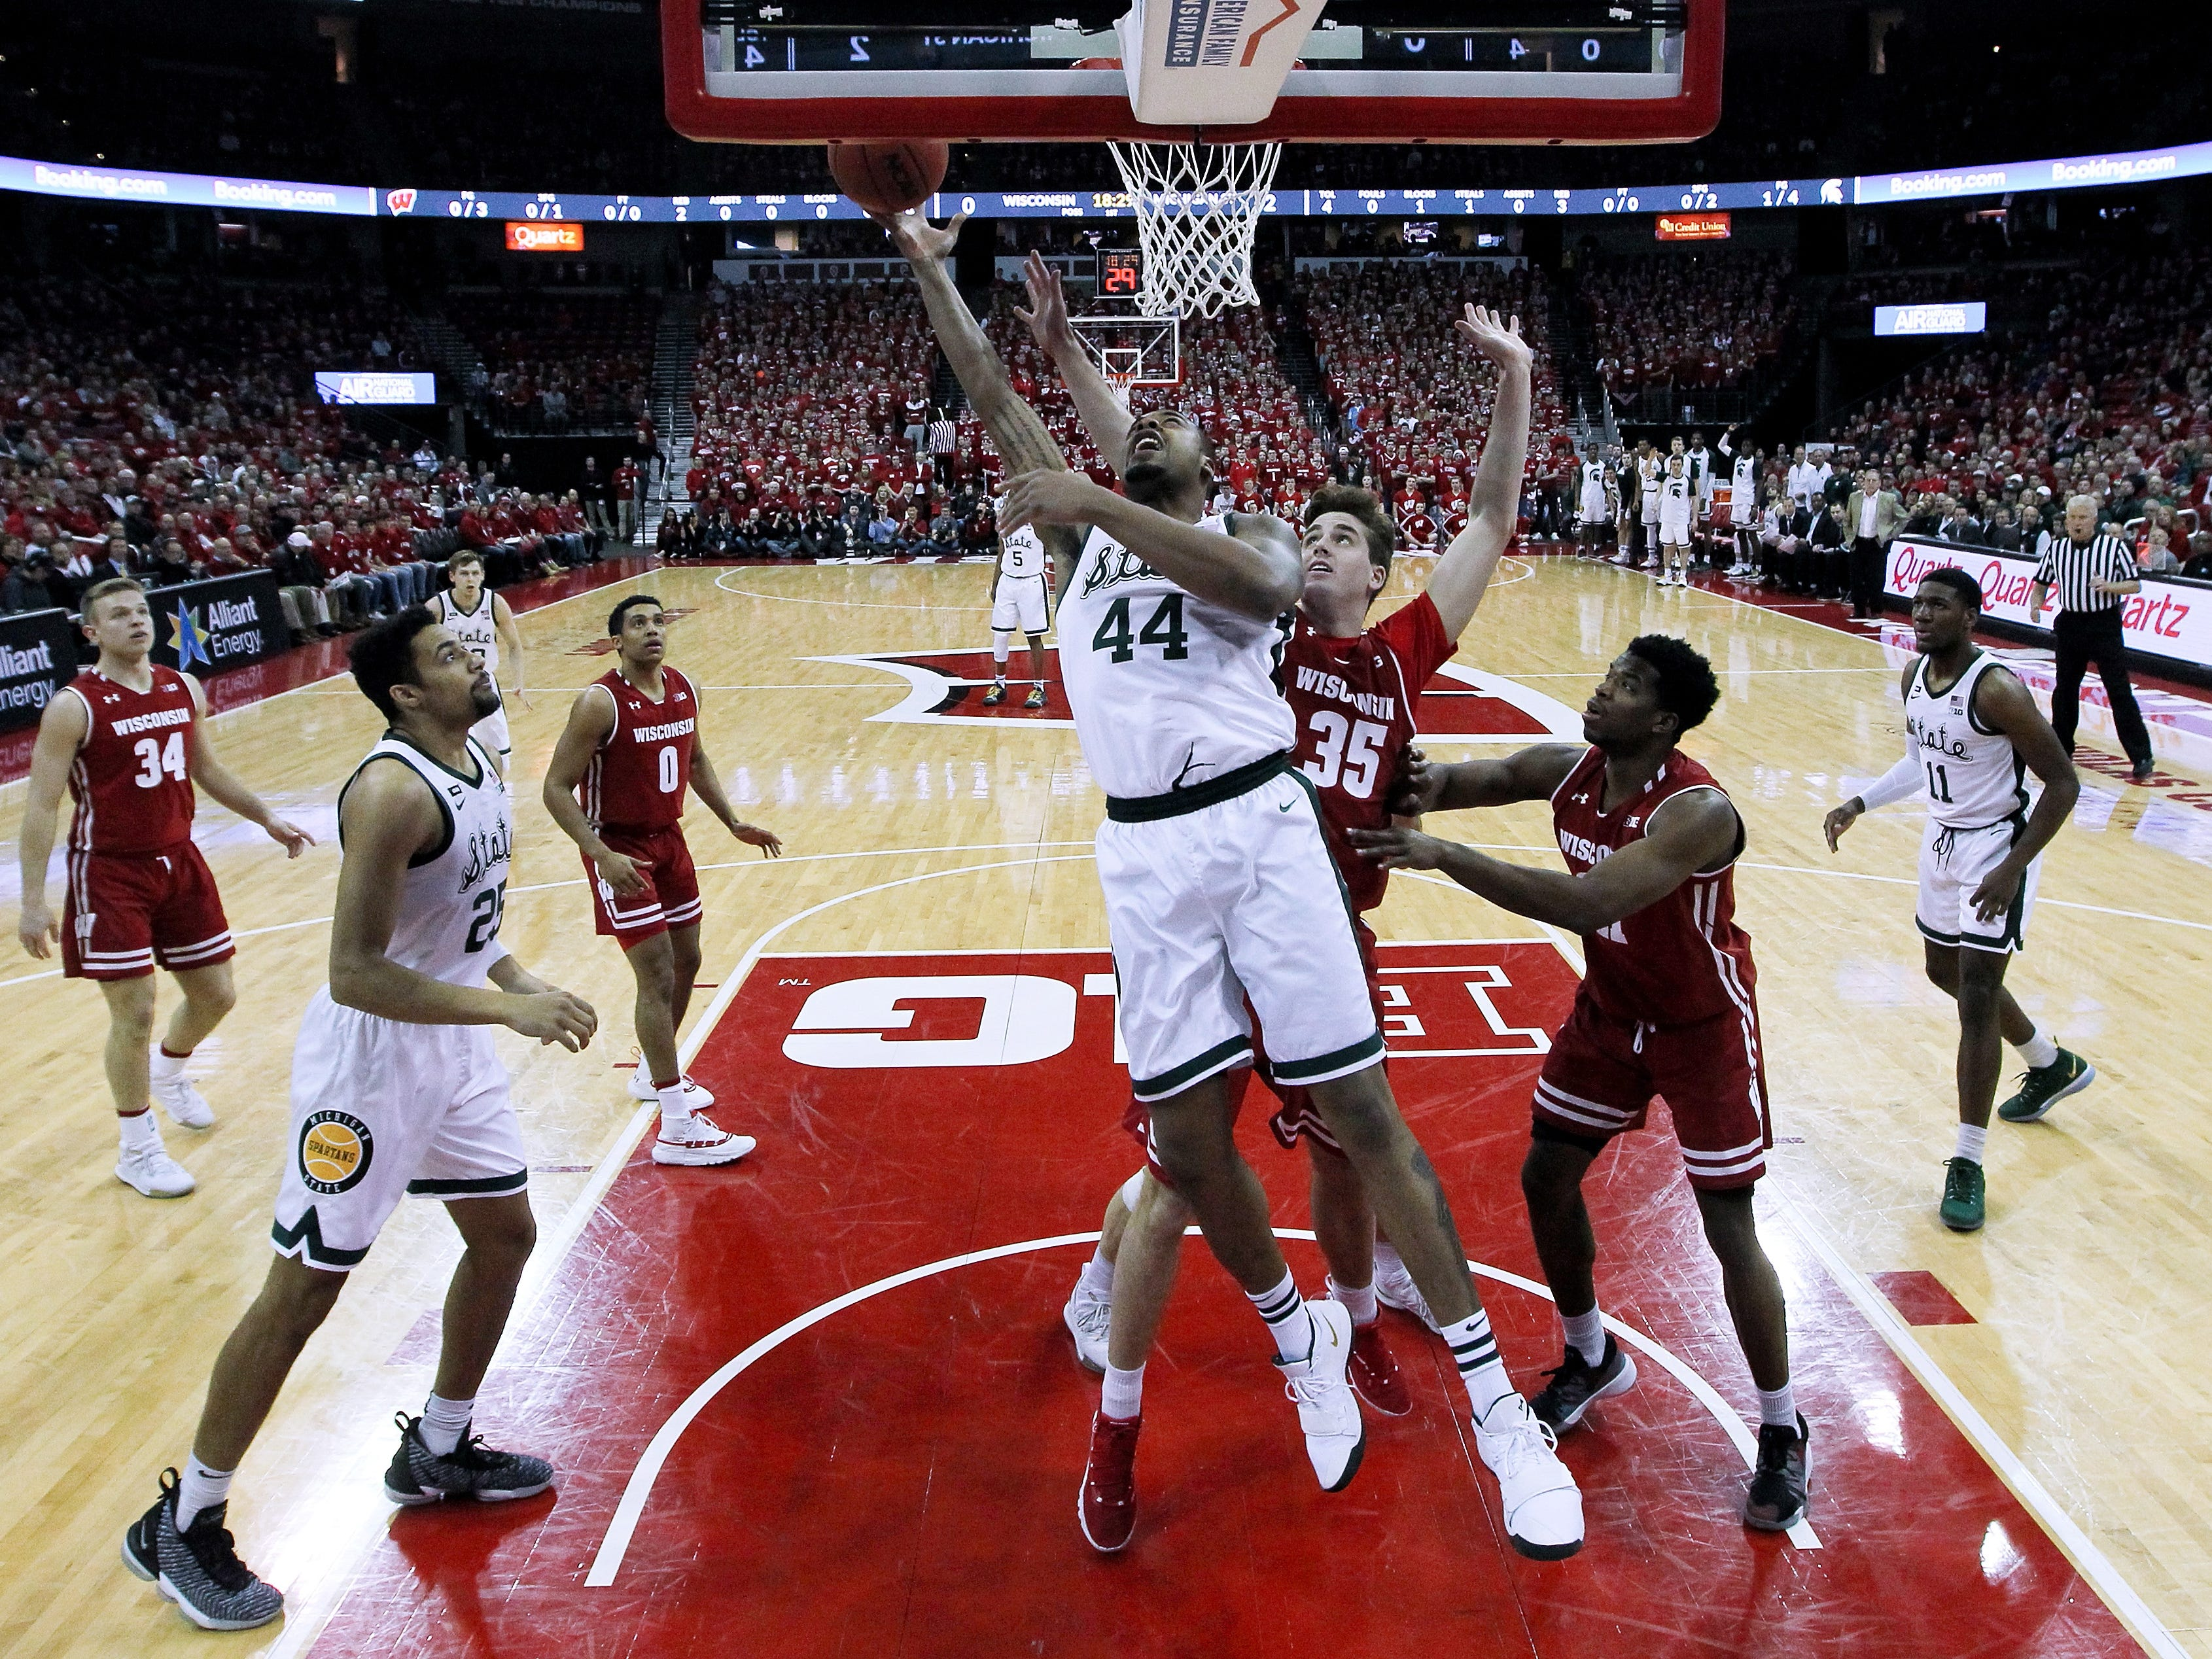 Michigan State's Nick Ward (44) attempts a shot while being guarded by Wisconsin's Nate Reuvers (35) in the first half.